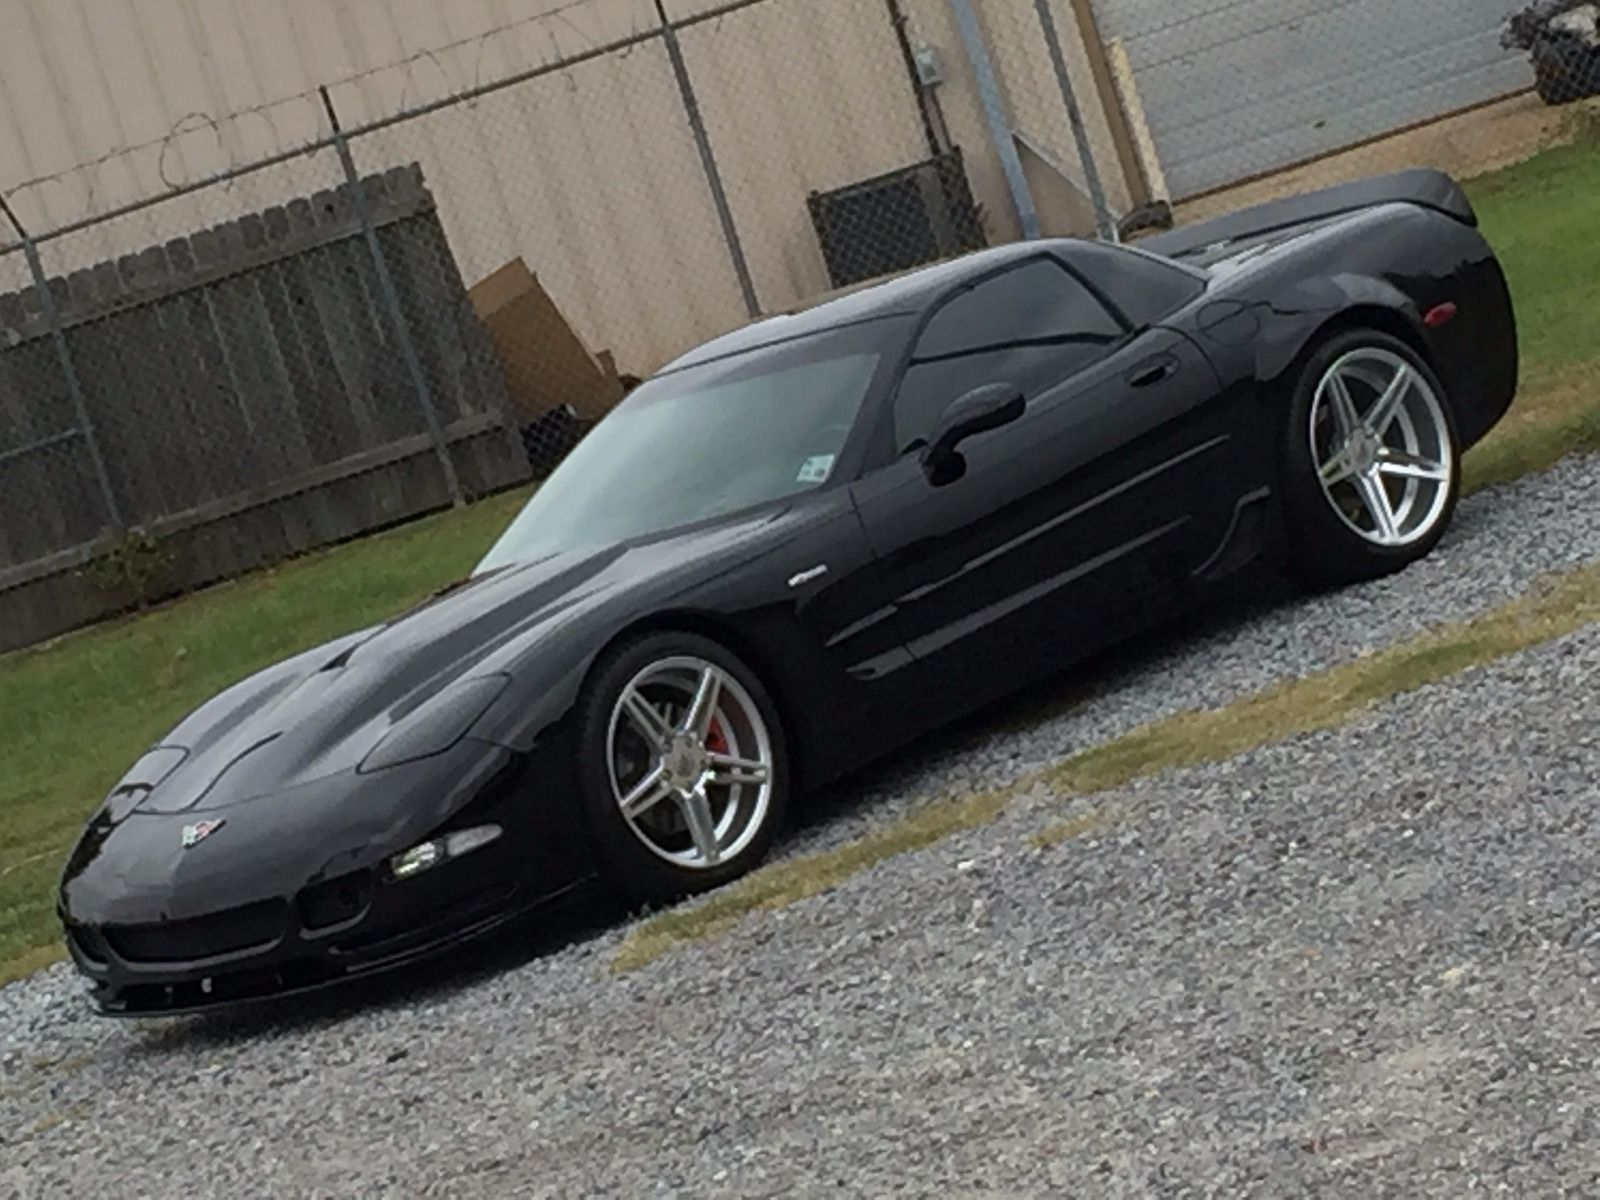 Best 25 1997 corvette ideas on pinterest chevrolet corvette stingray corvette c7 stingray and corvettes